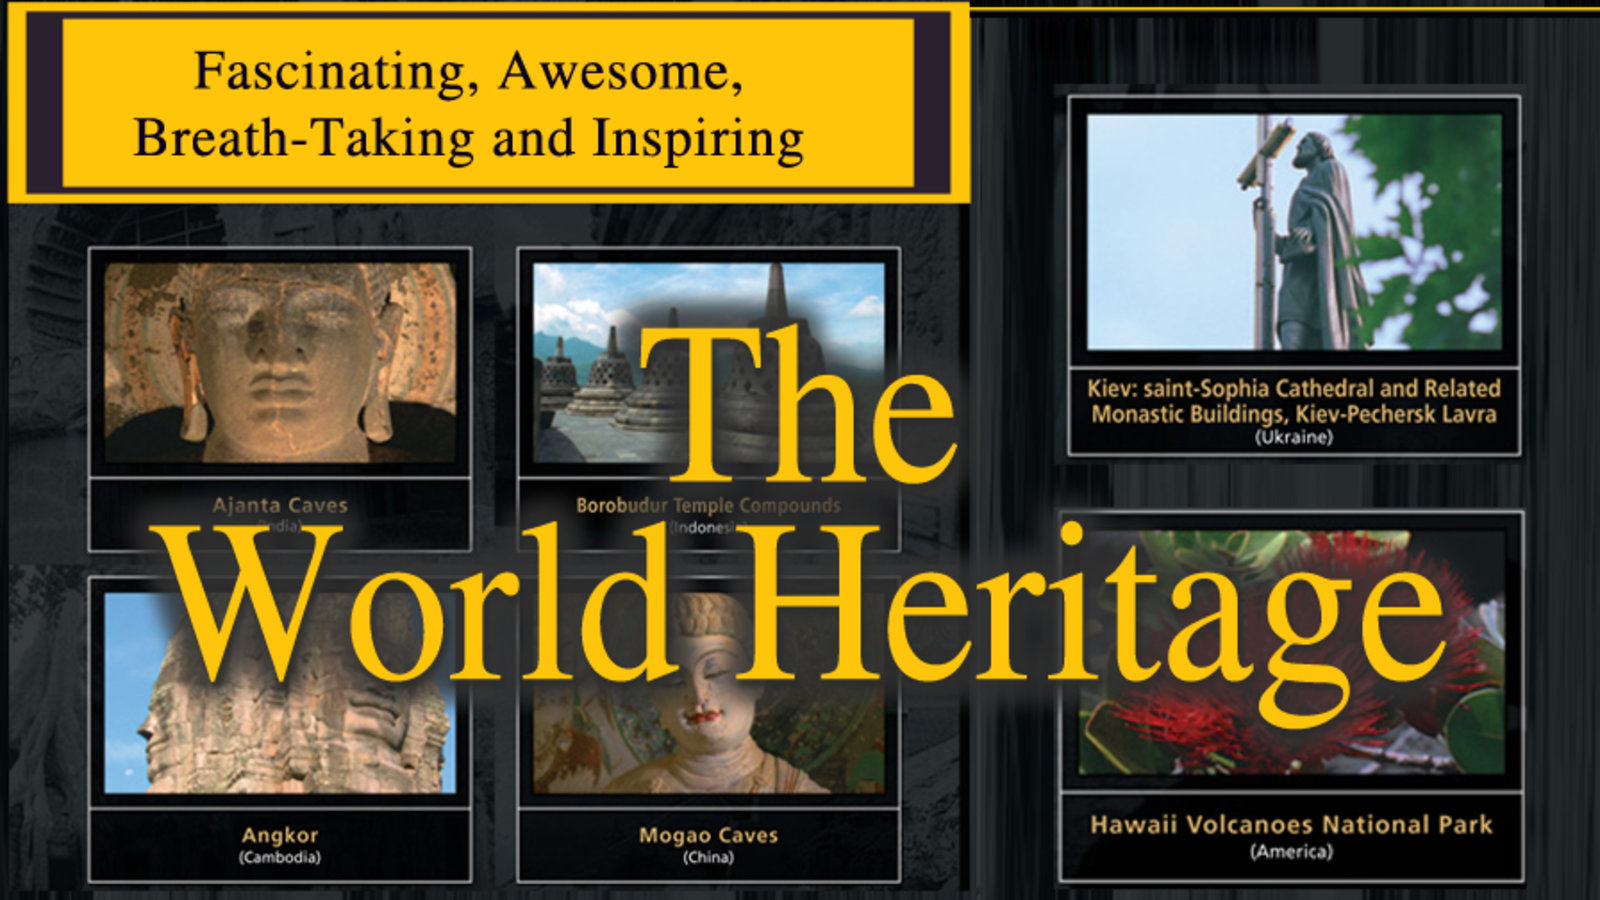 World Heritage Series